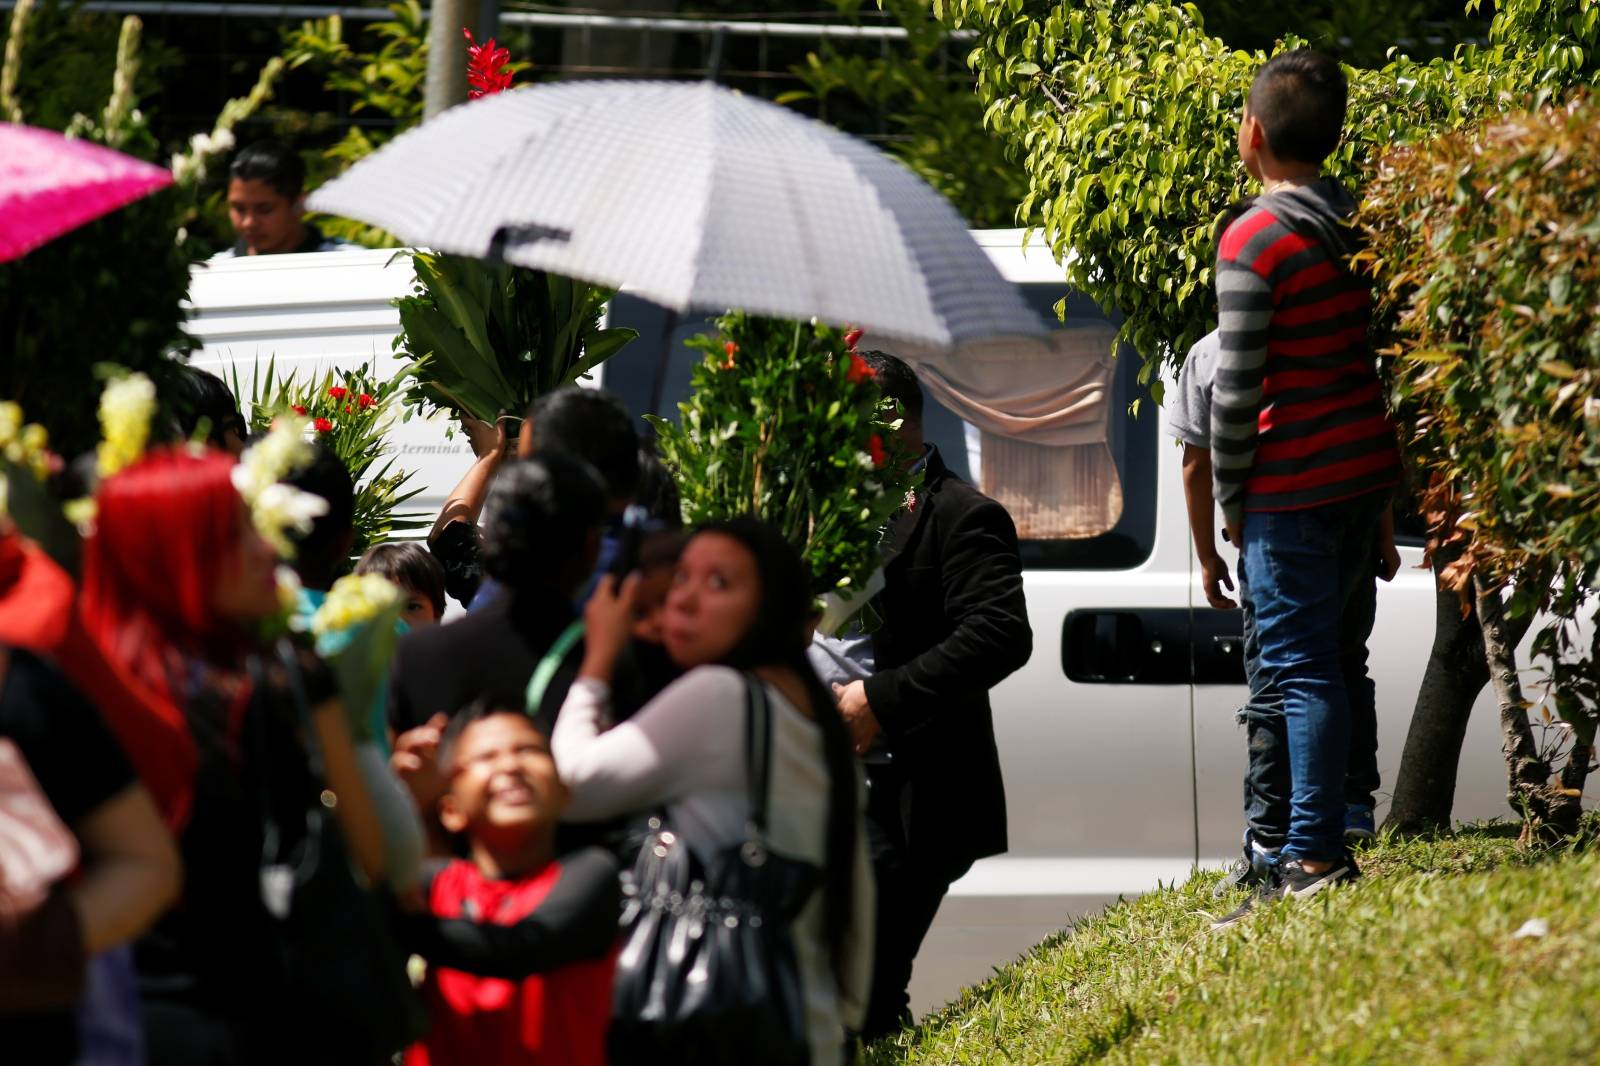 Family and friends participate in the funeral of Oscar Alberto Martinez Ramirez and his daughter Valeria, migrants who drowned in the Rio Grande river during their journey to the U.S., at La Bermeja cemetery in San Salvador